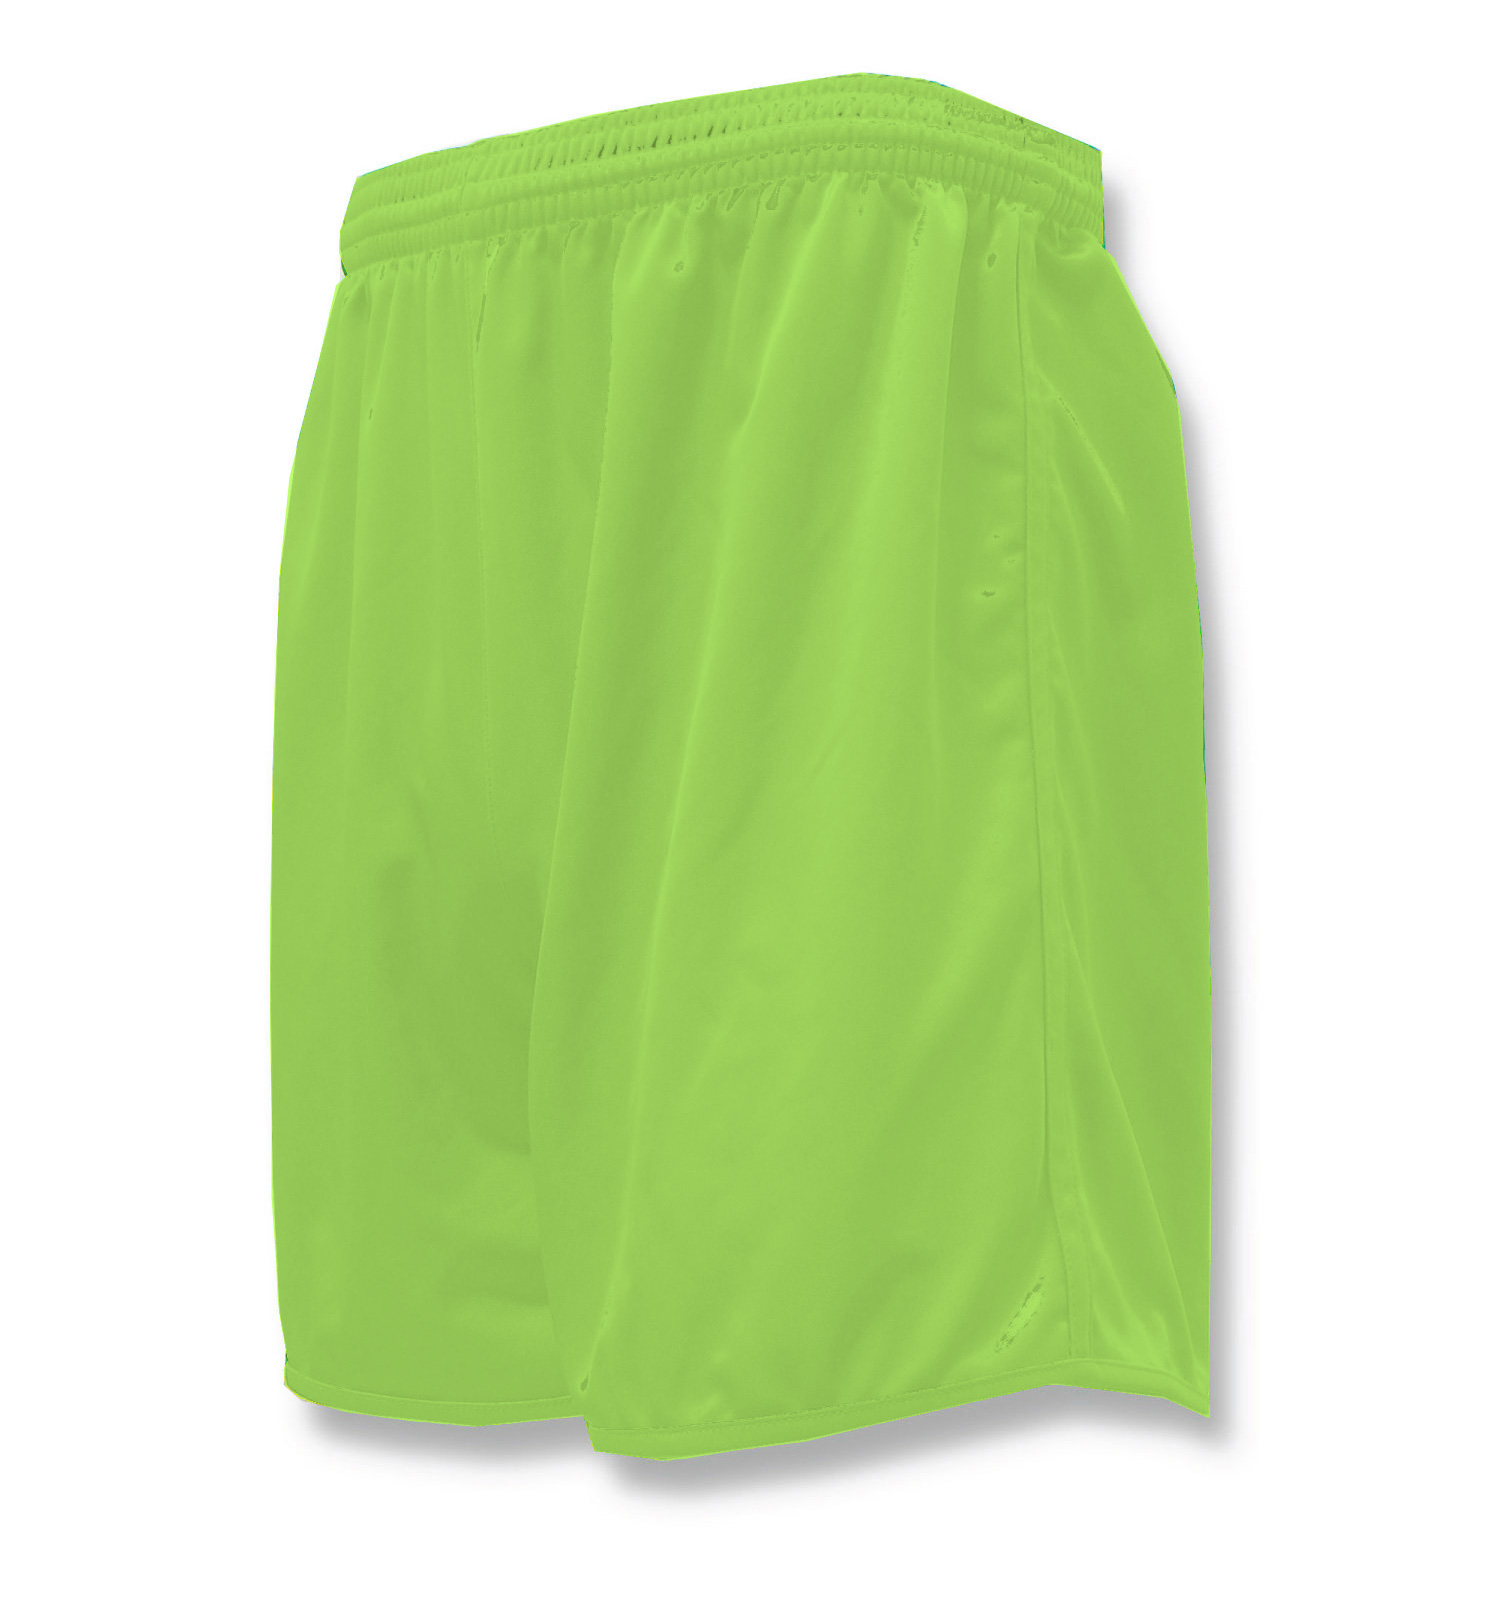 Bravo soccer shorts in lime by Code Four Athletics